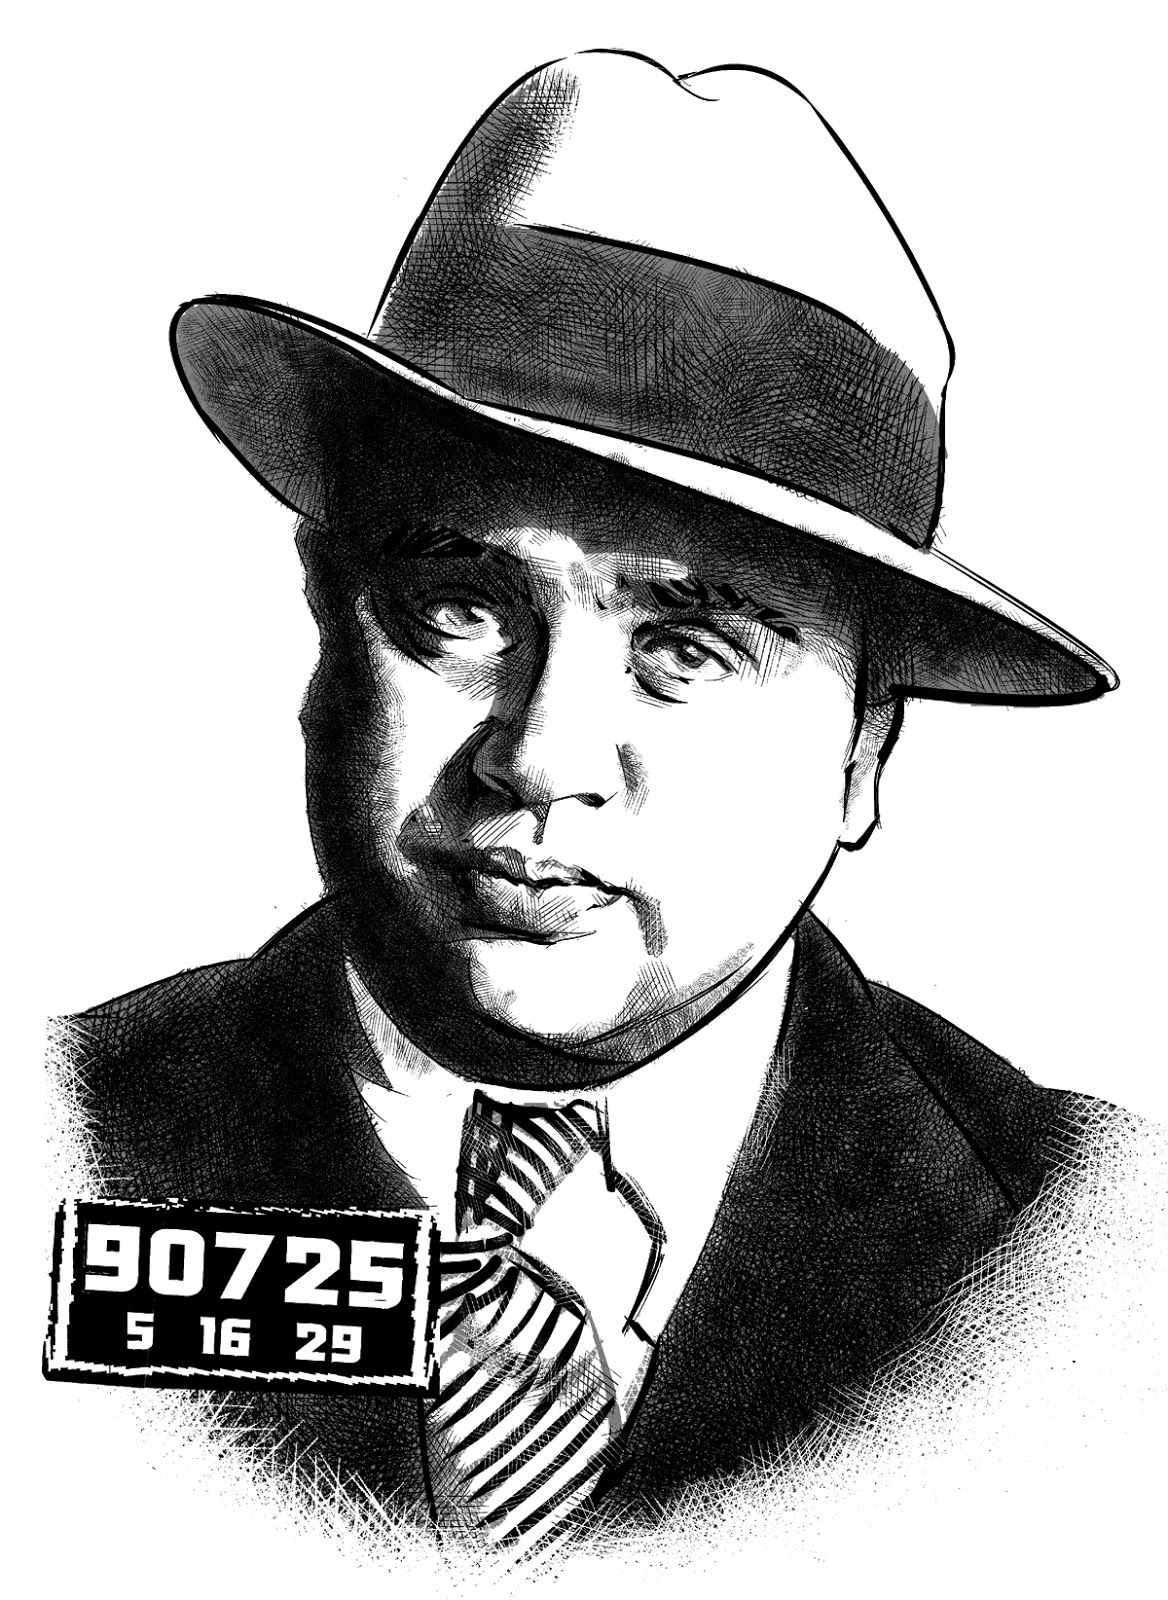 al capone final Find out more about the history of al capone, including videos, interesting articles, pictures, historical features and more final days capone spent.